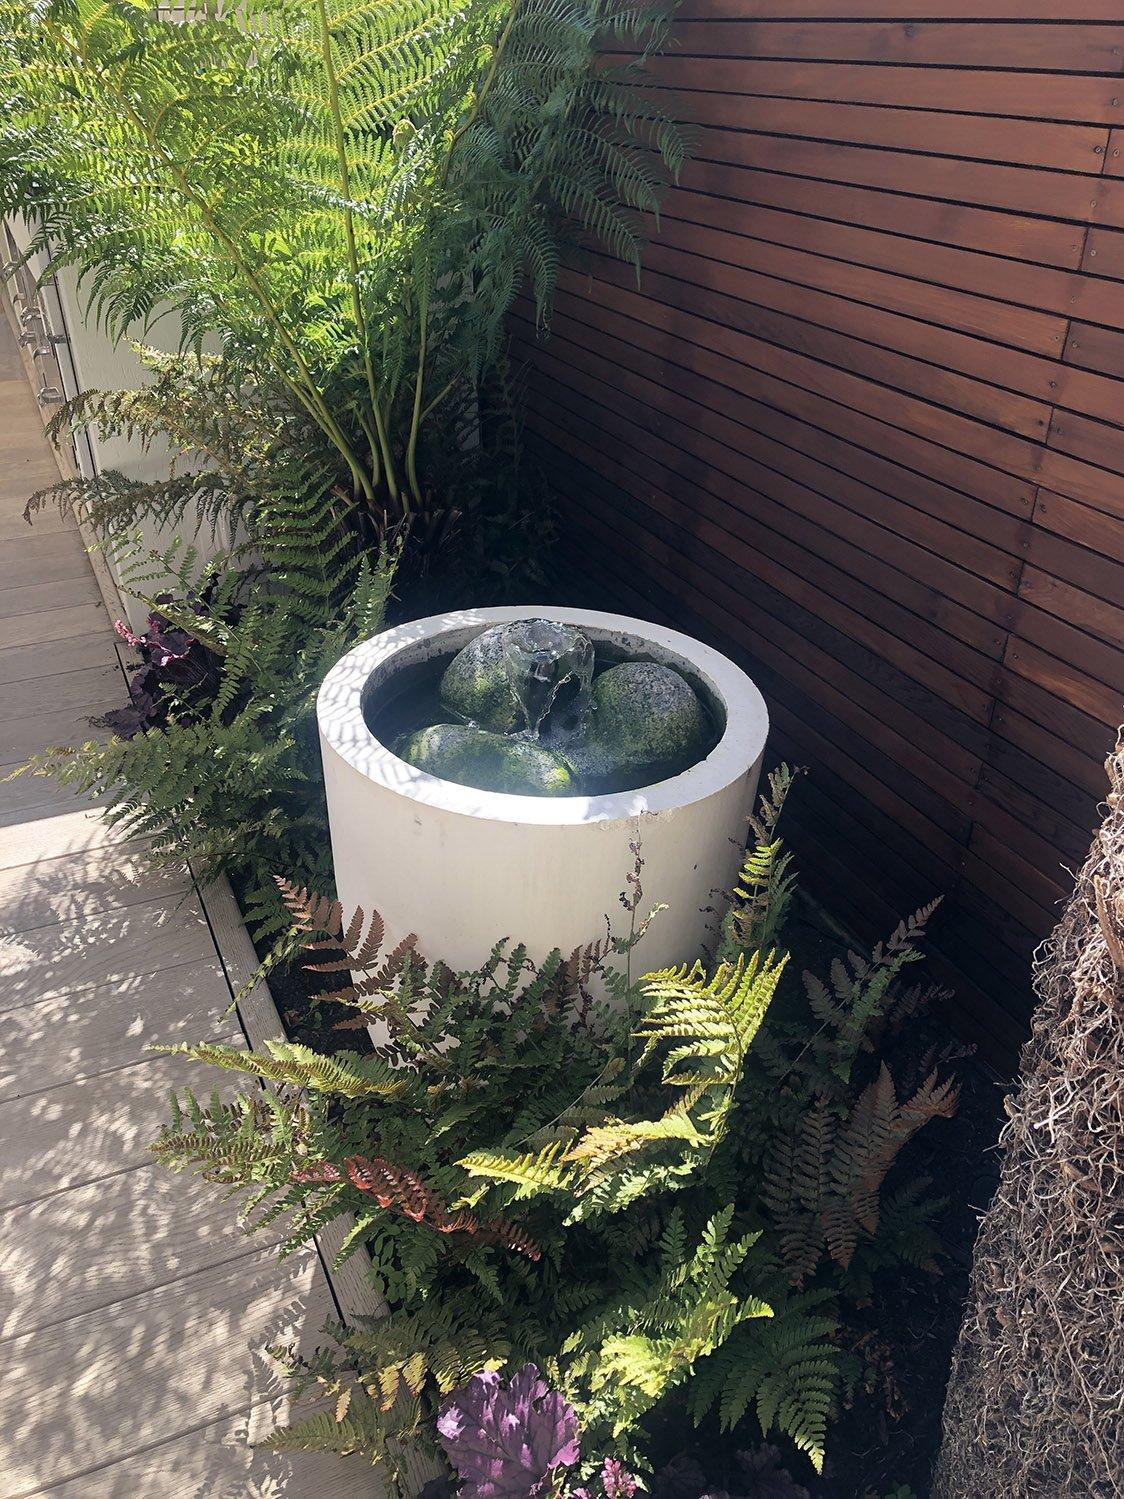 Richmond project showing stylish water features for the garden